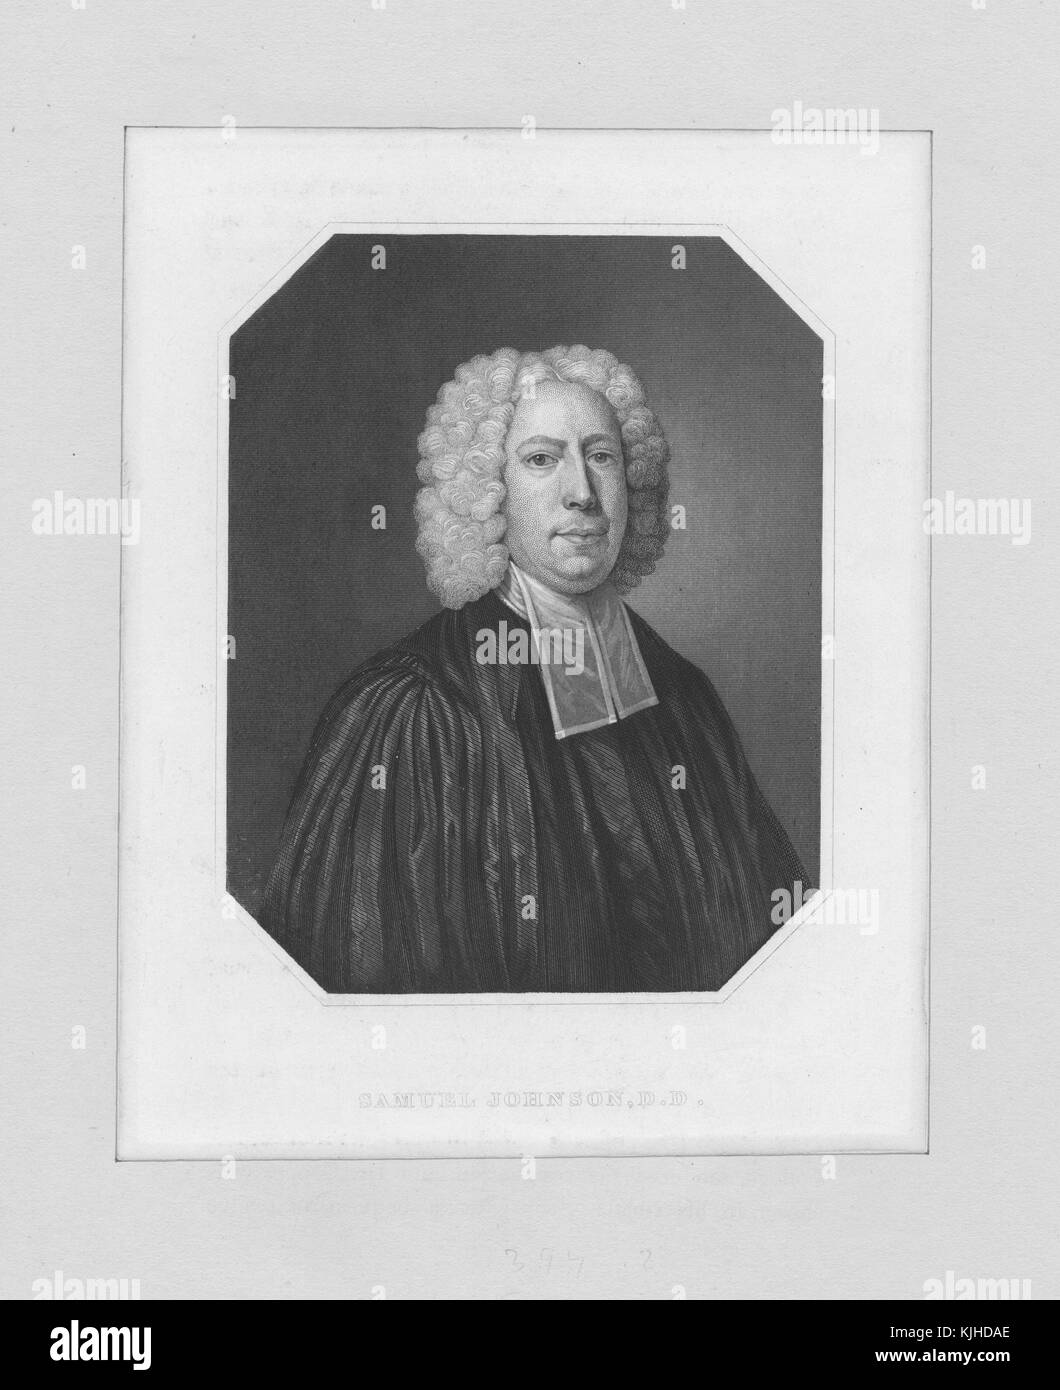 An etching from a portrait of Samuel Johnson, he was an English writer, editor, and lexicographer, he published - Stock Image